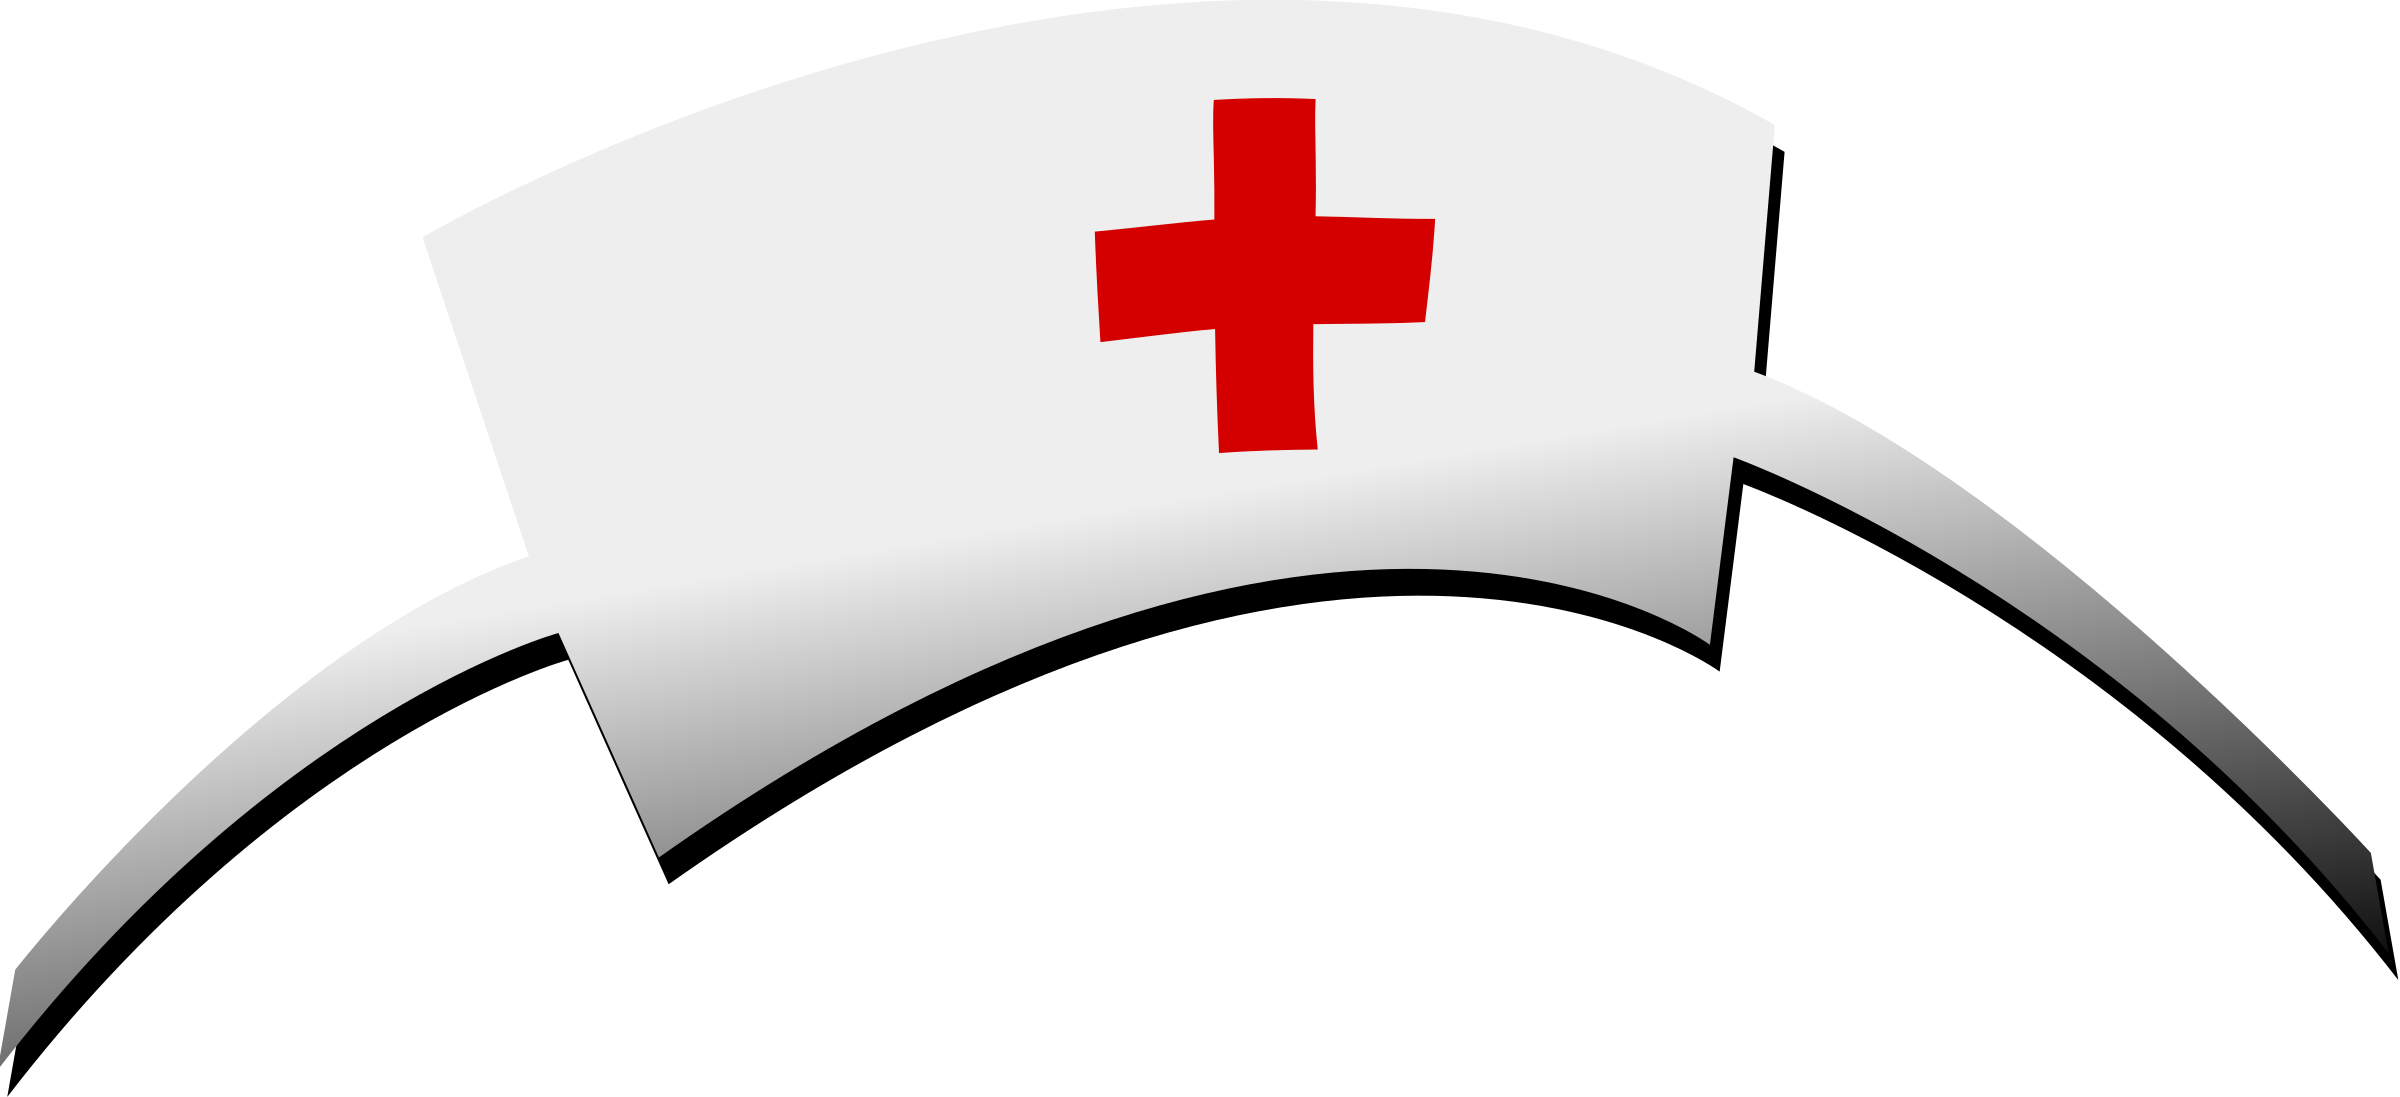 Nurse hat png. Icons free and downloads